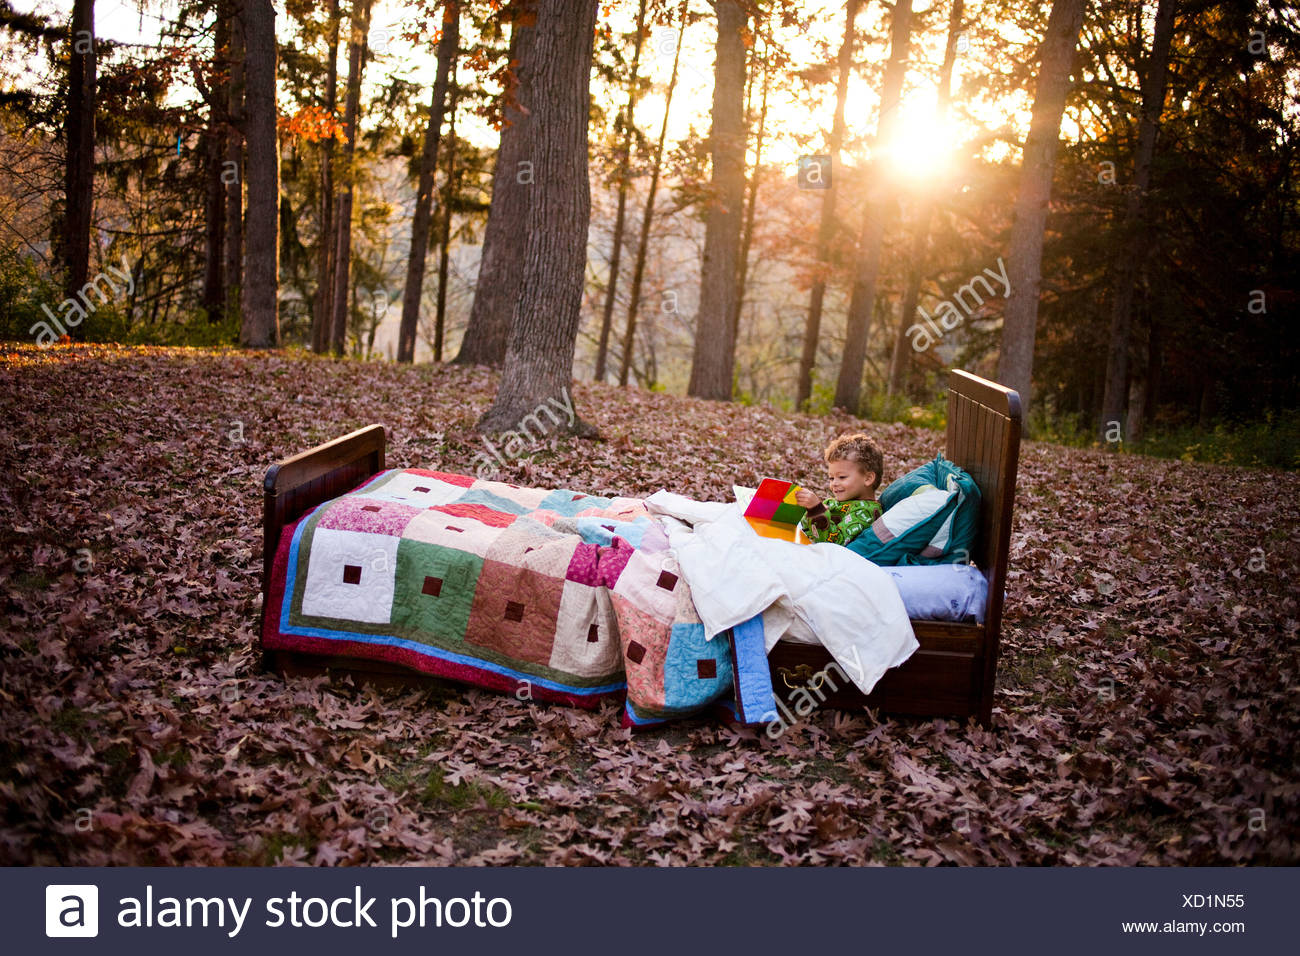 Young boy in bed in forest Stock Photo